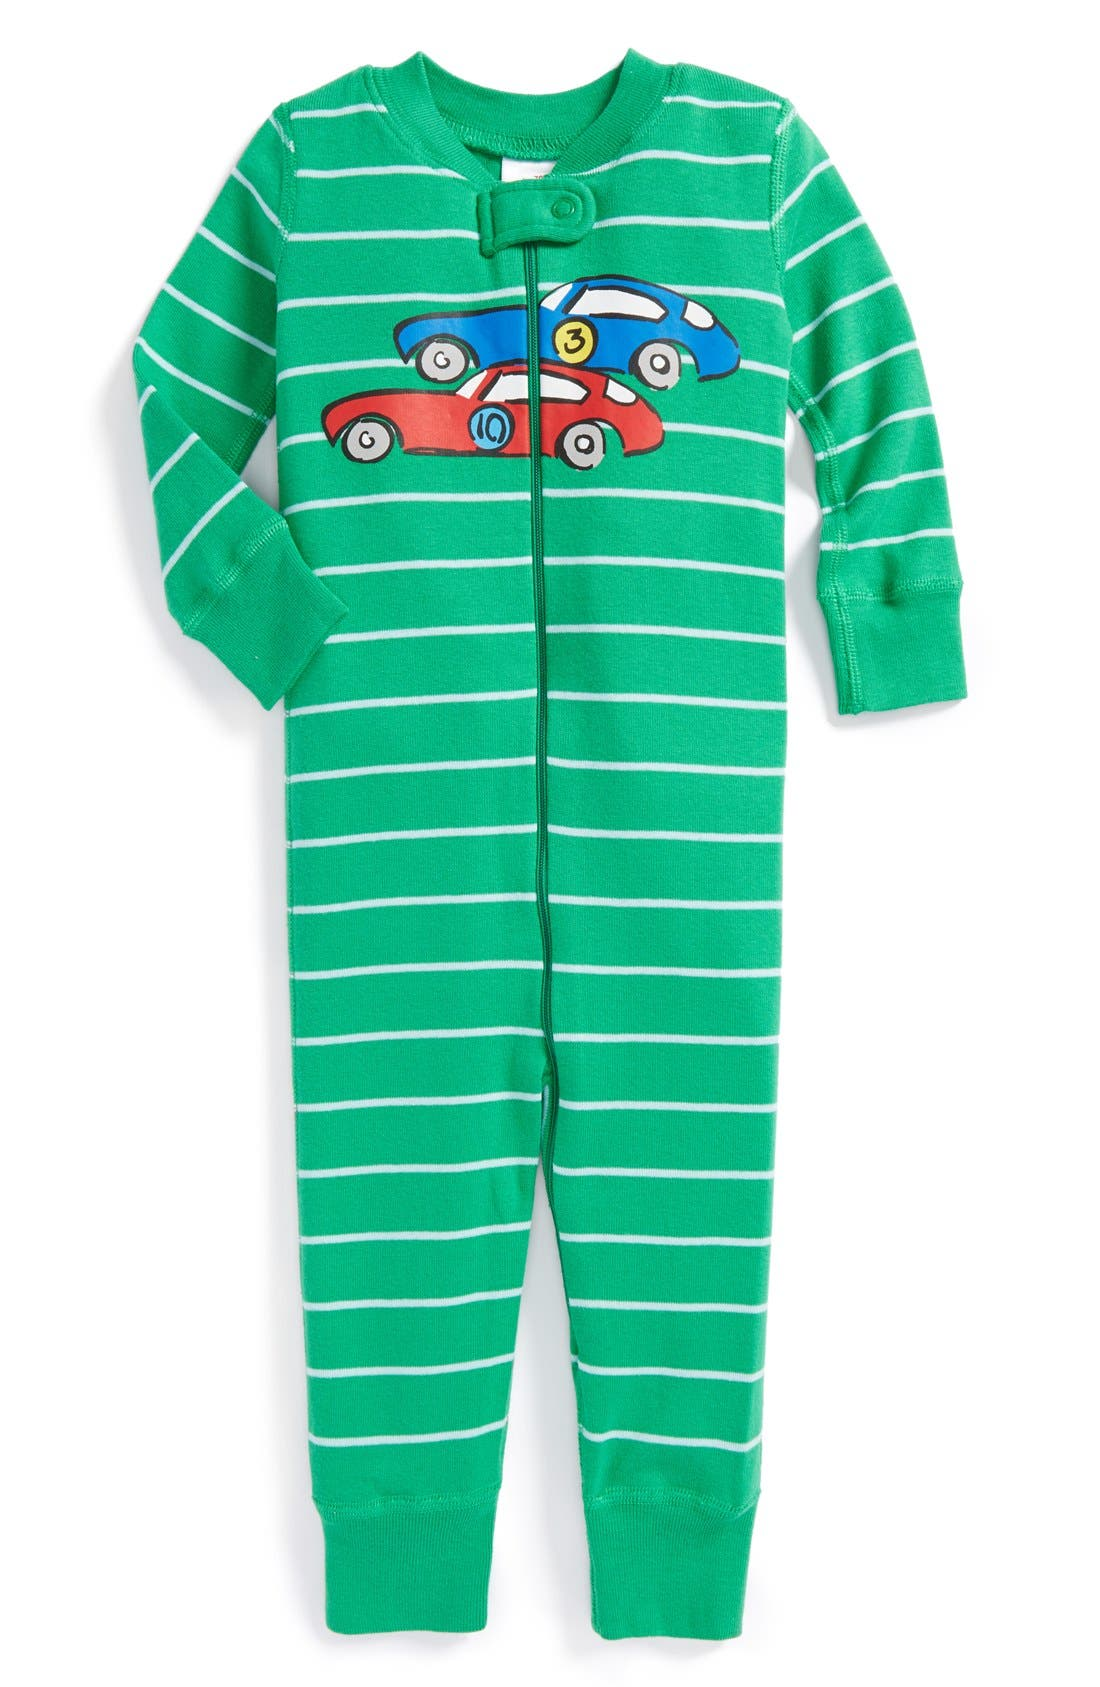 Alternate Image 1 Selected - Hanna Andersson 'Car' Organic Cotton Romper Pajamas (Baby Boys)